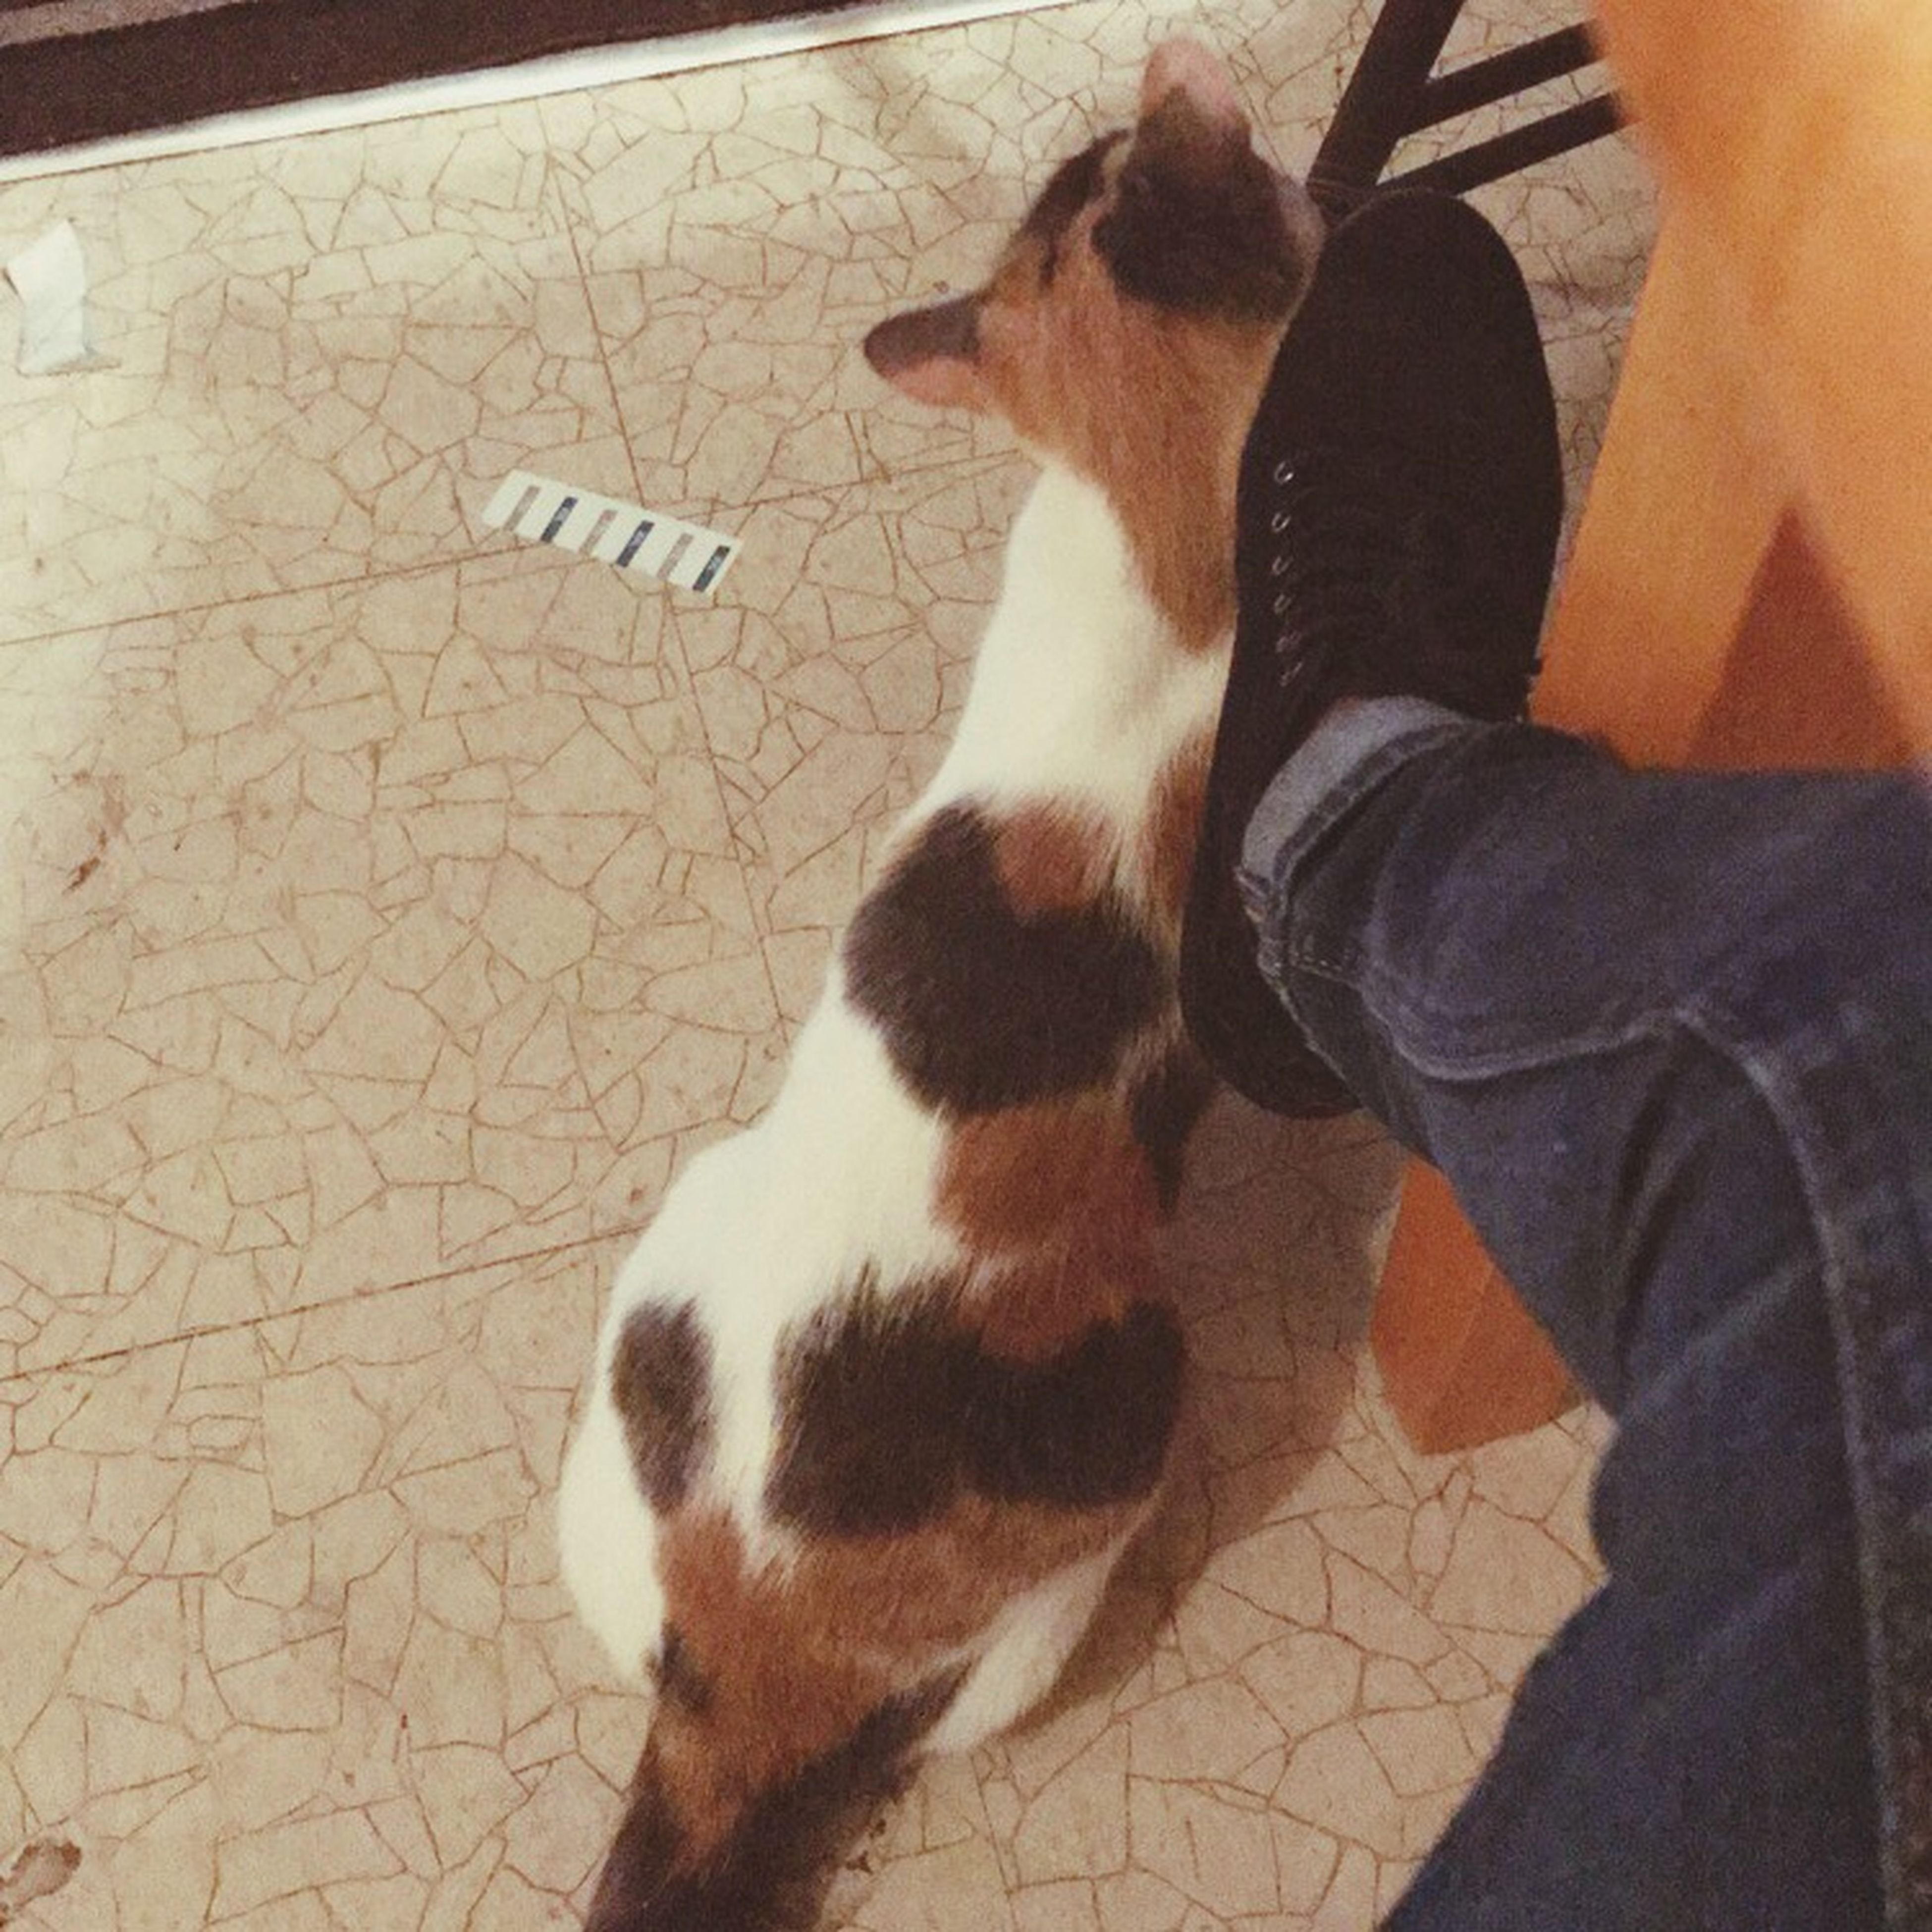 pets, domestic animals, mammal, one animal, dog, one person, real people, high angle view, lifestyles, pet owner, human body part, women, leisure activity, human leg, low section, human hand, day, feline, indoors, adult